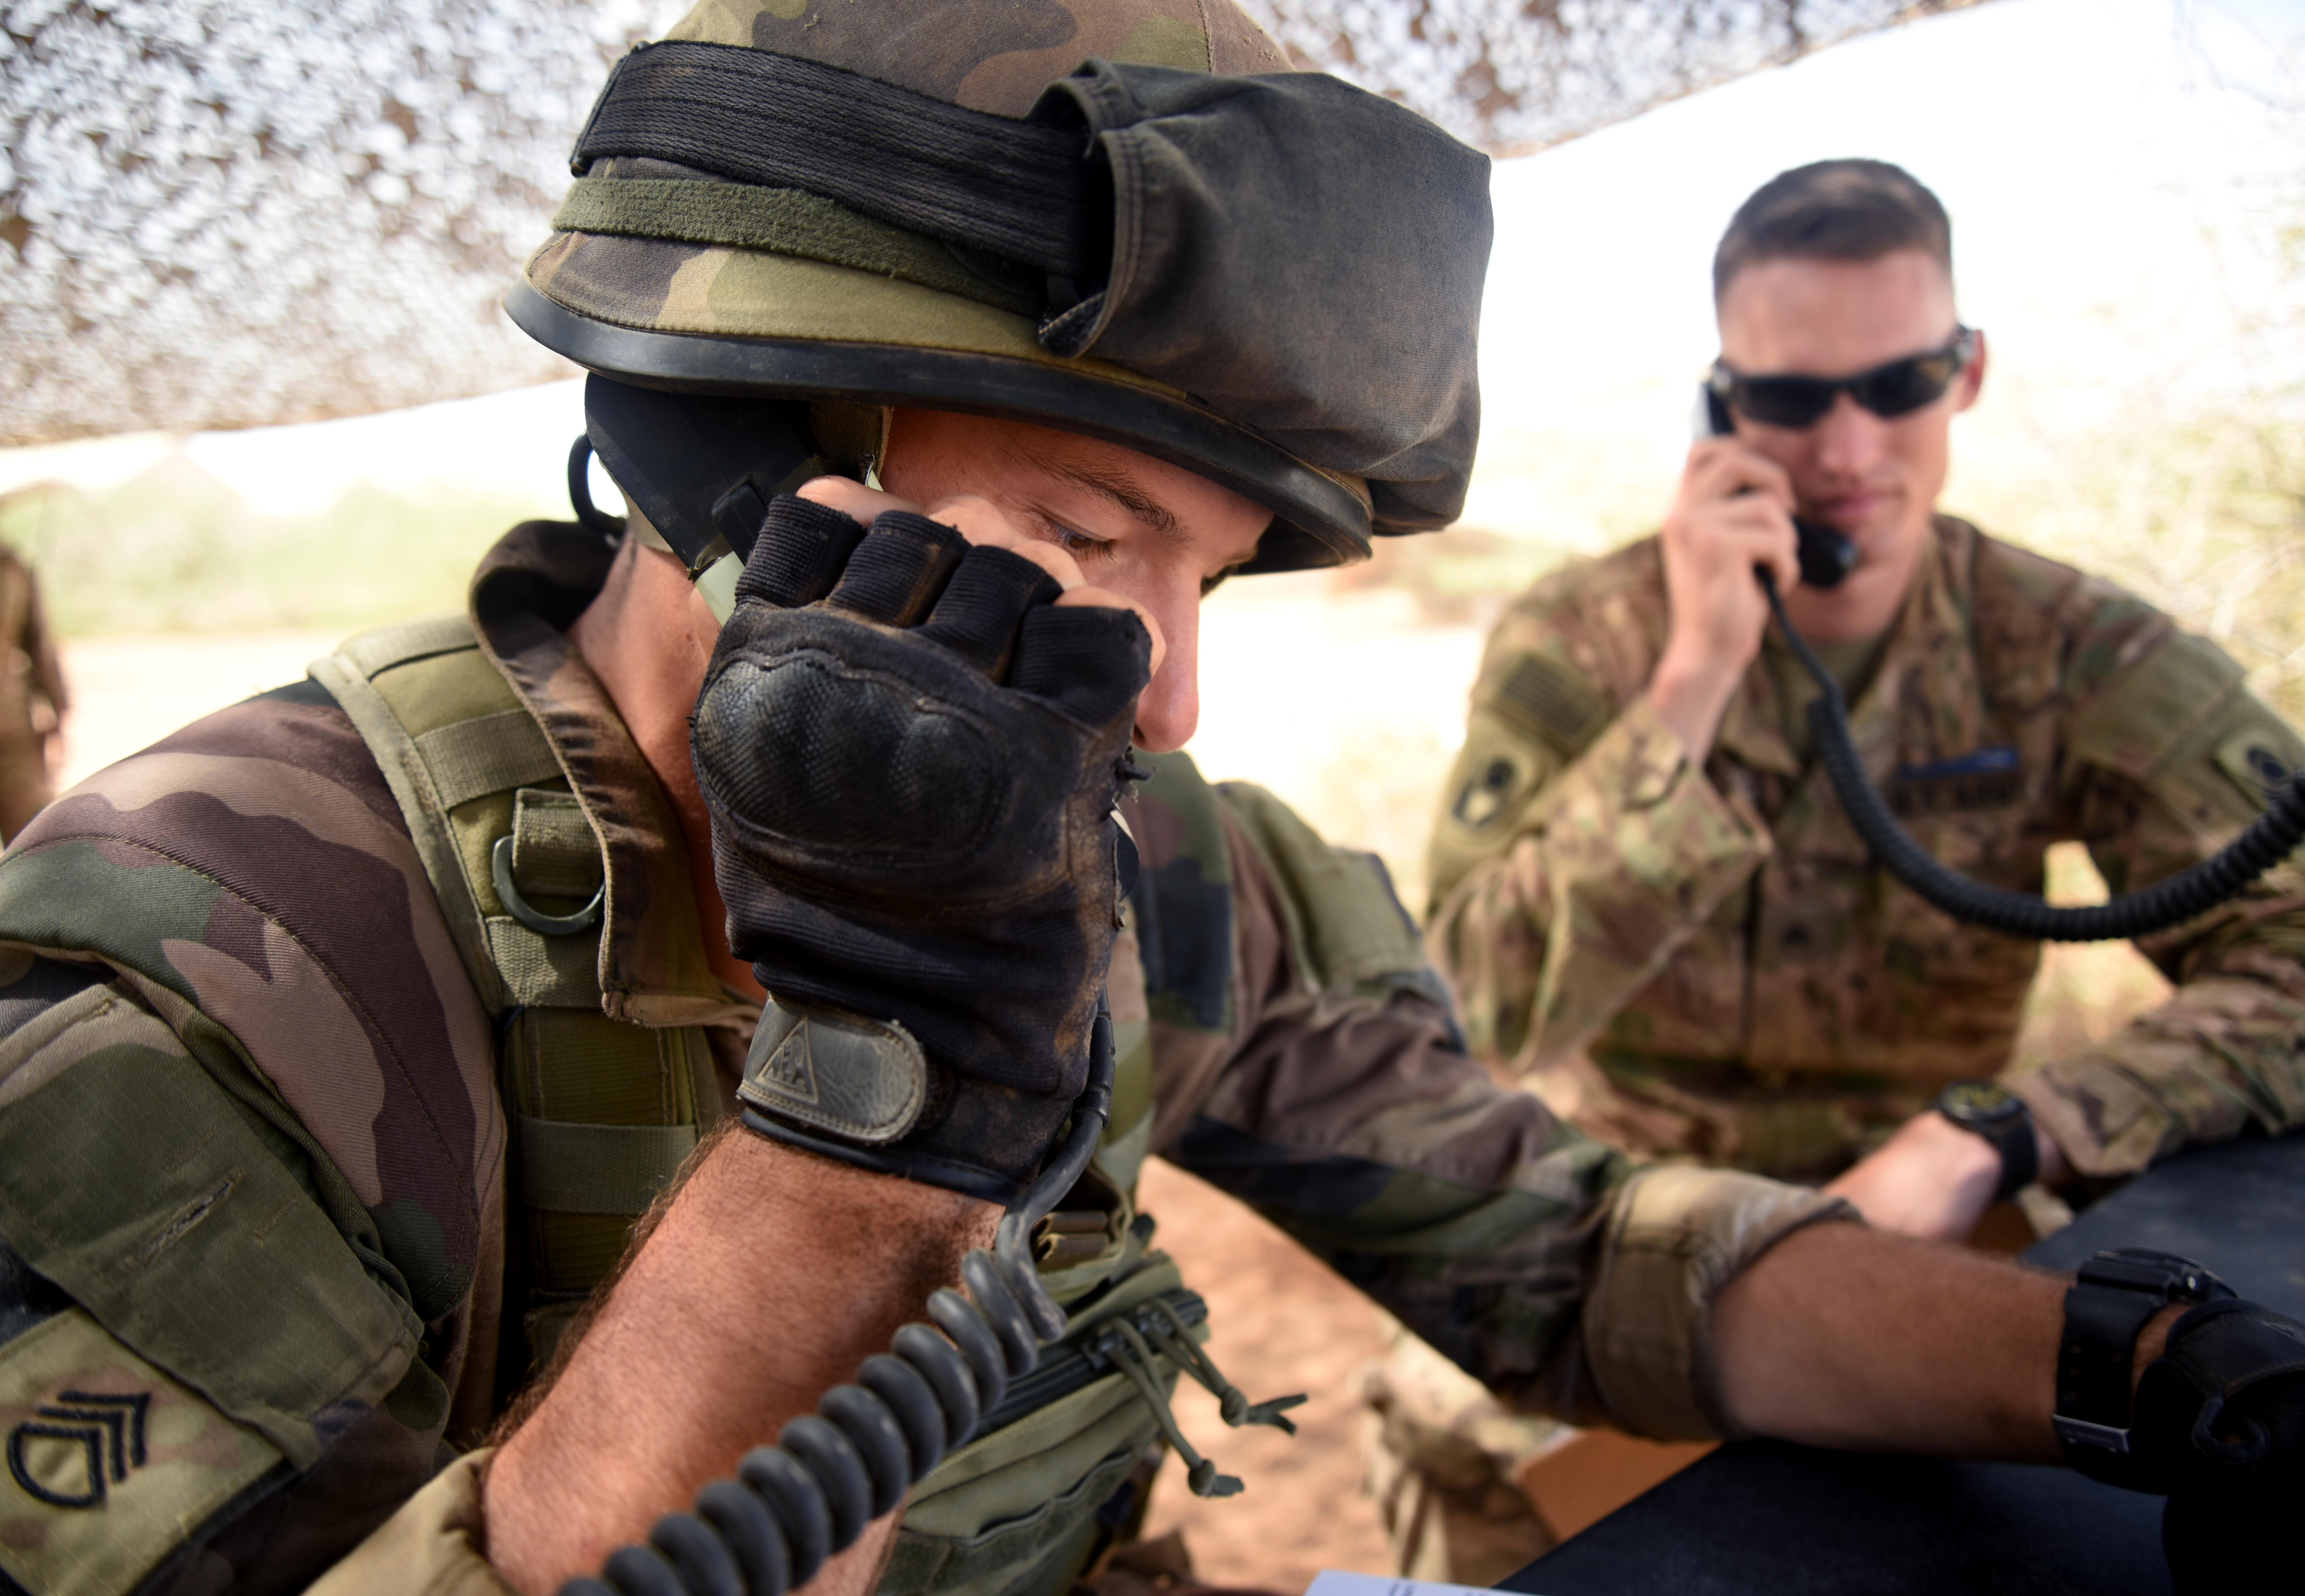 A French Army Soldier simulates calling in suspicious activity March 31, 2016, during the patrolling portion of the EIB course at Camp Lemonnier, Djibouti. The patrolling day included the most diverse categories of the course such as face paint, radio calls, hand signals and gas mask drills. (U.S. Air Force photo by Staff Sgt. Kate Thornton)